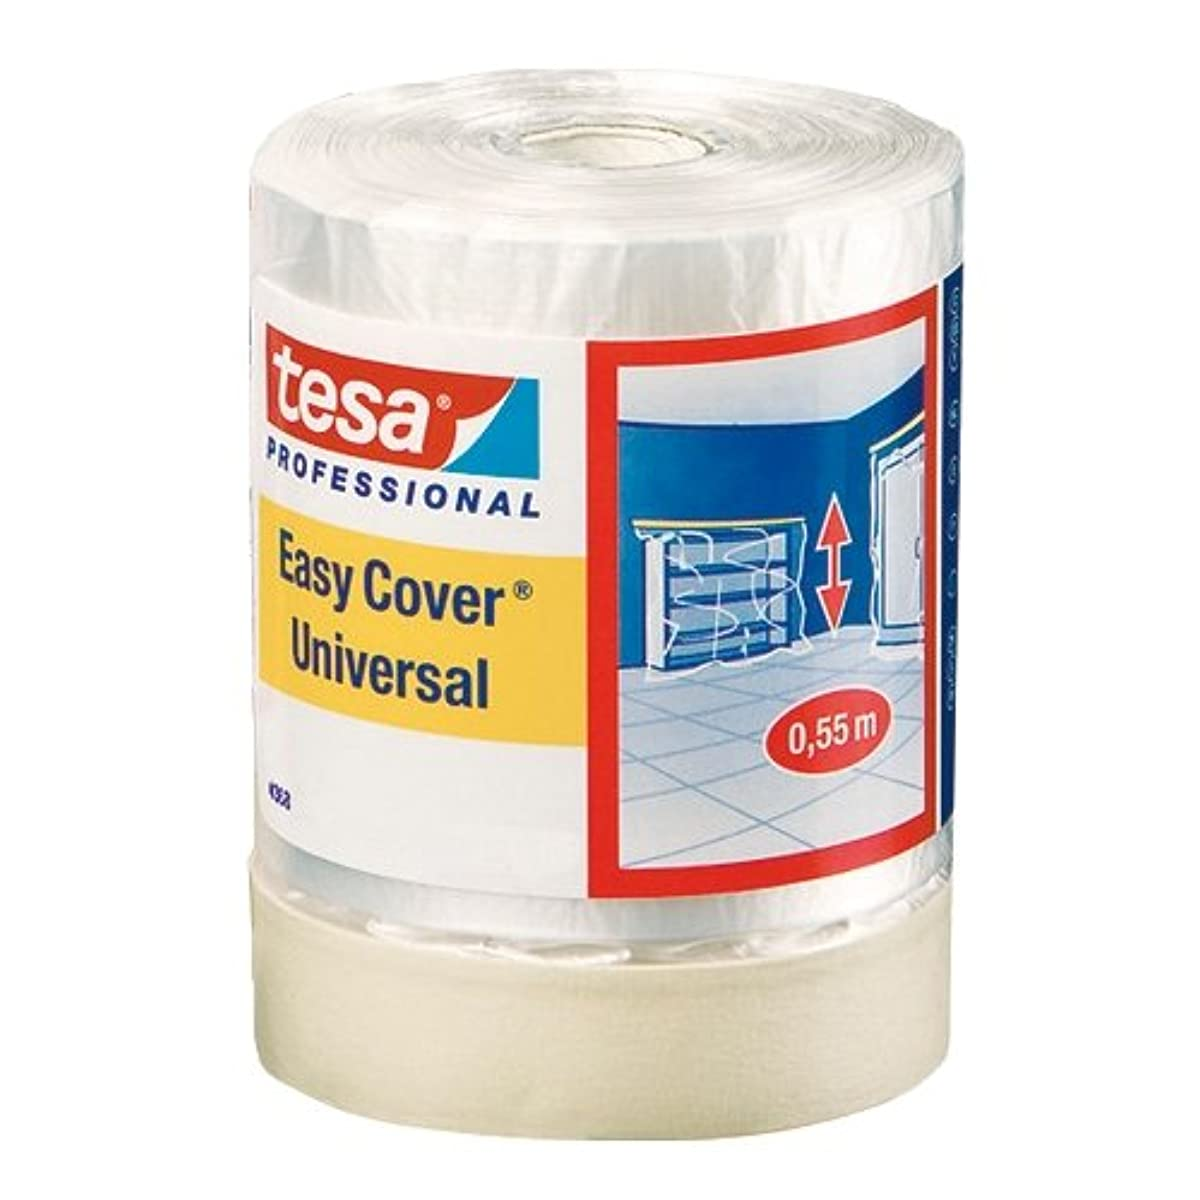 Tesa Easy Cover 4368 04368-00011-01 Premium Masking Tape with Cover Sheeting 33 m x 300 mm by tesa UK